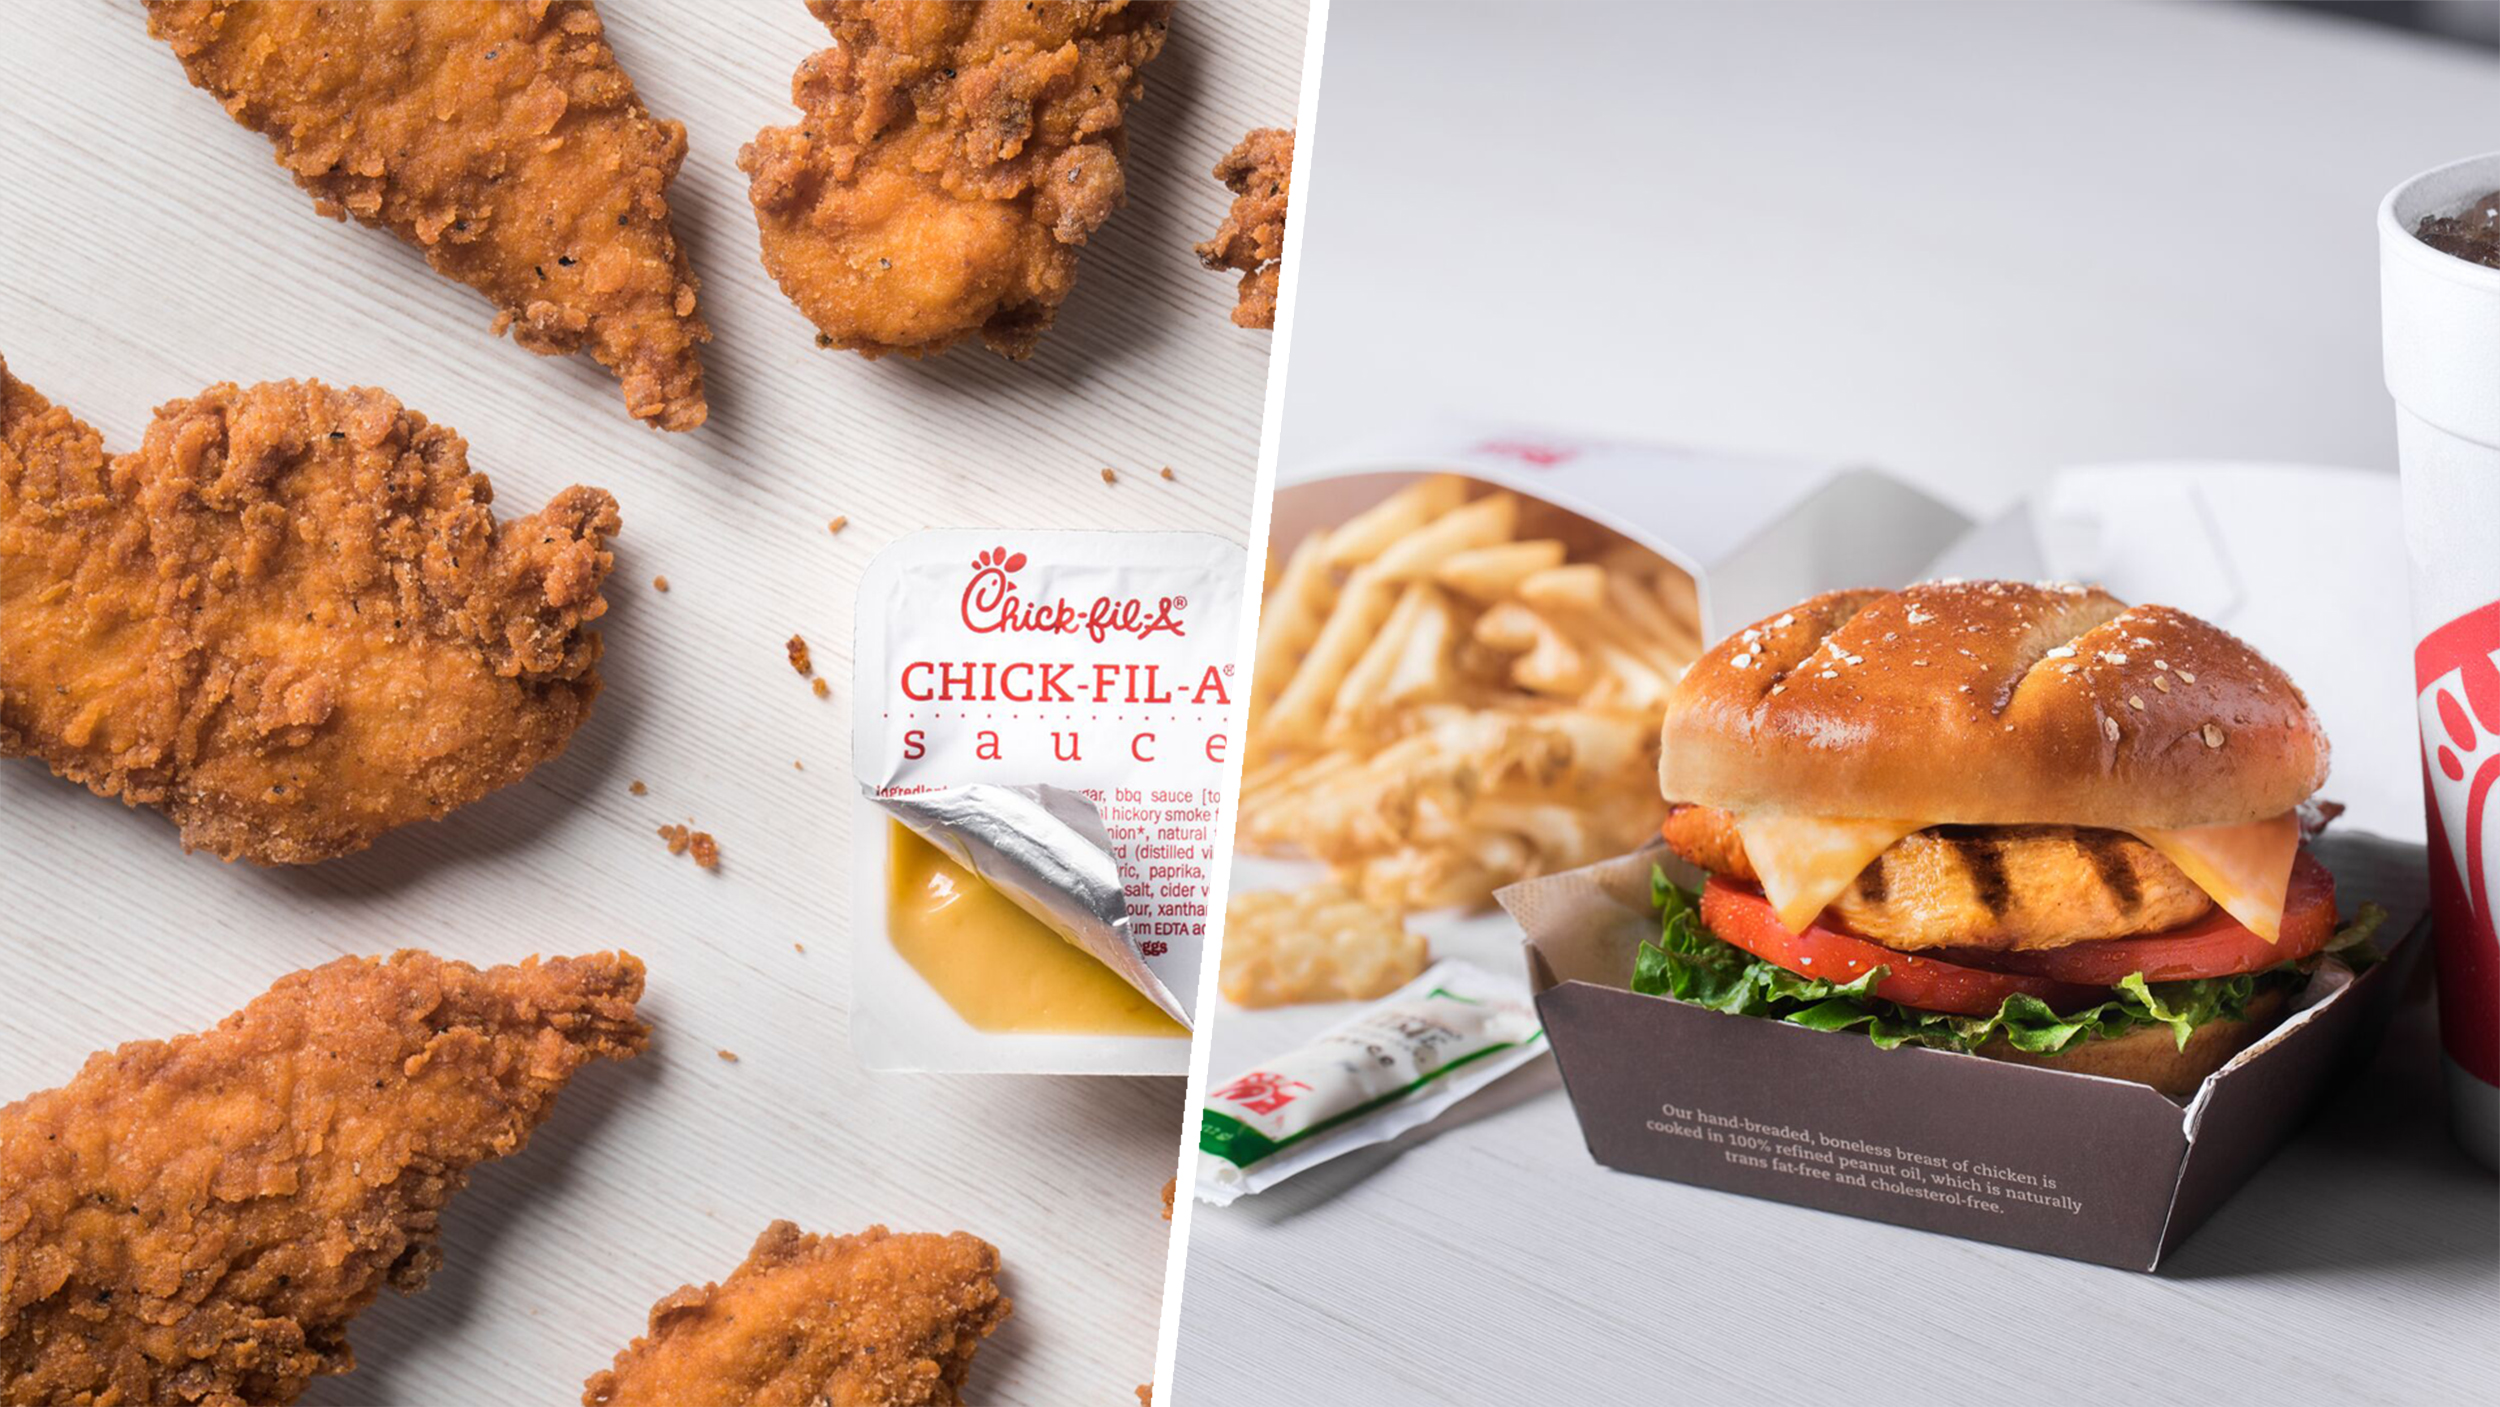 chickfila launches new spicy chicken tenders grilled